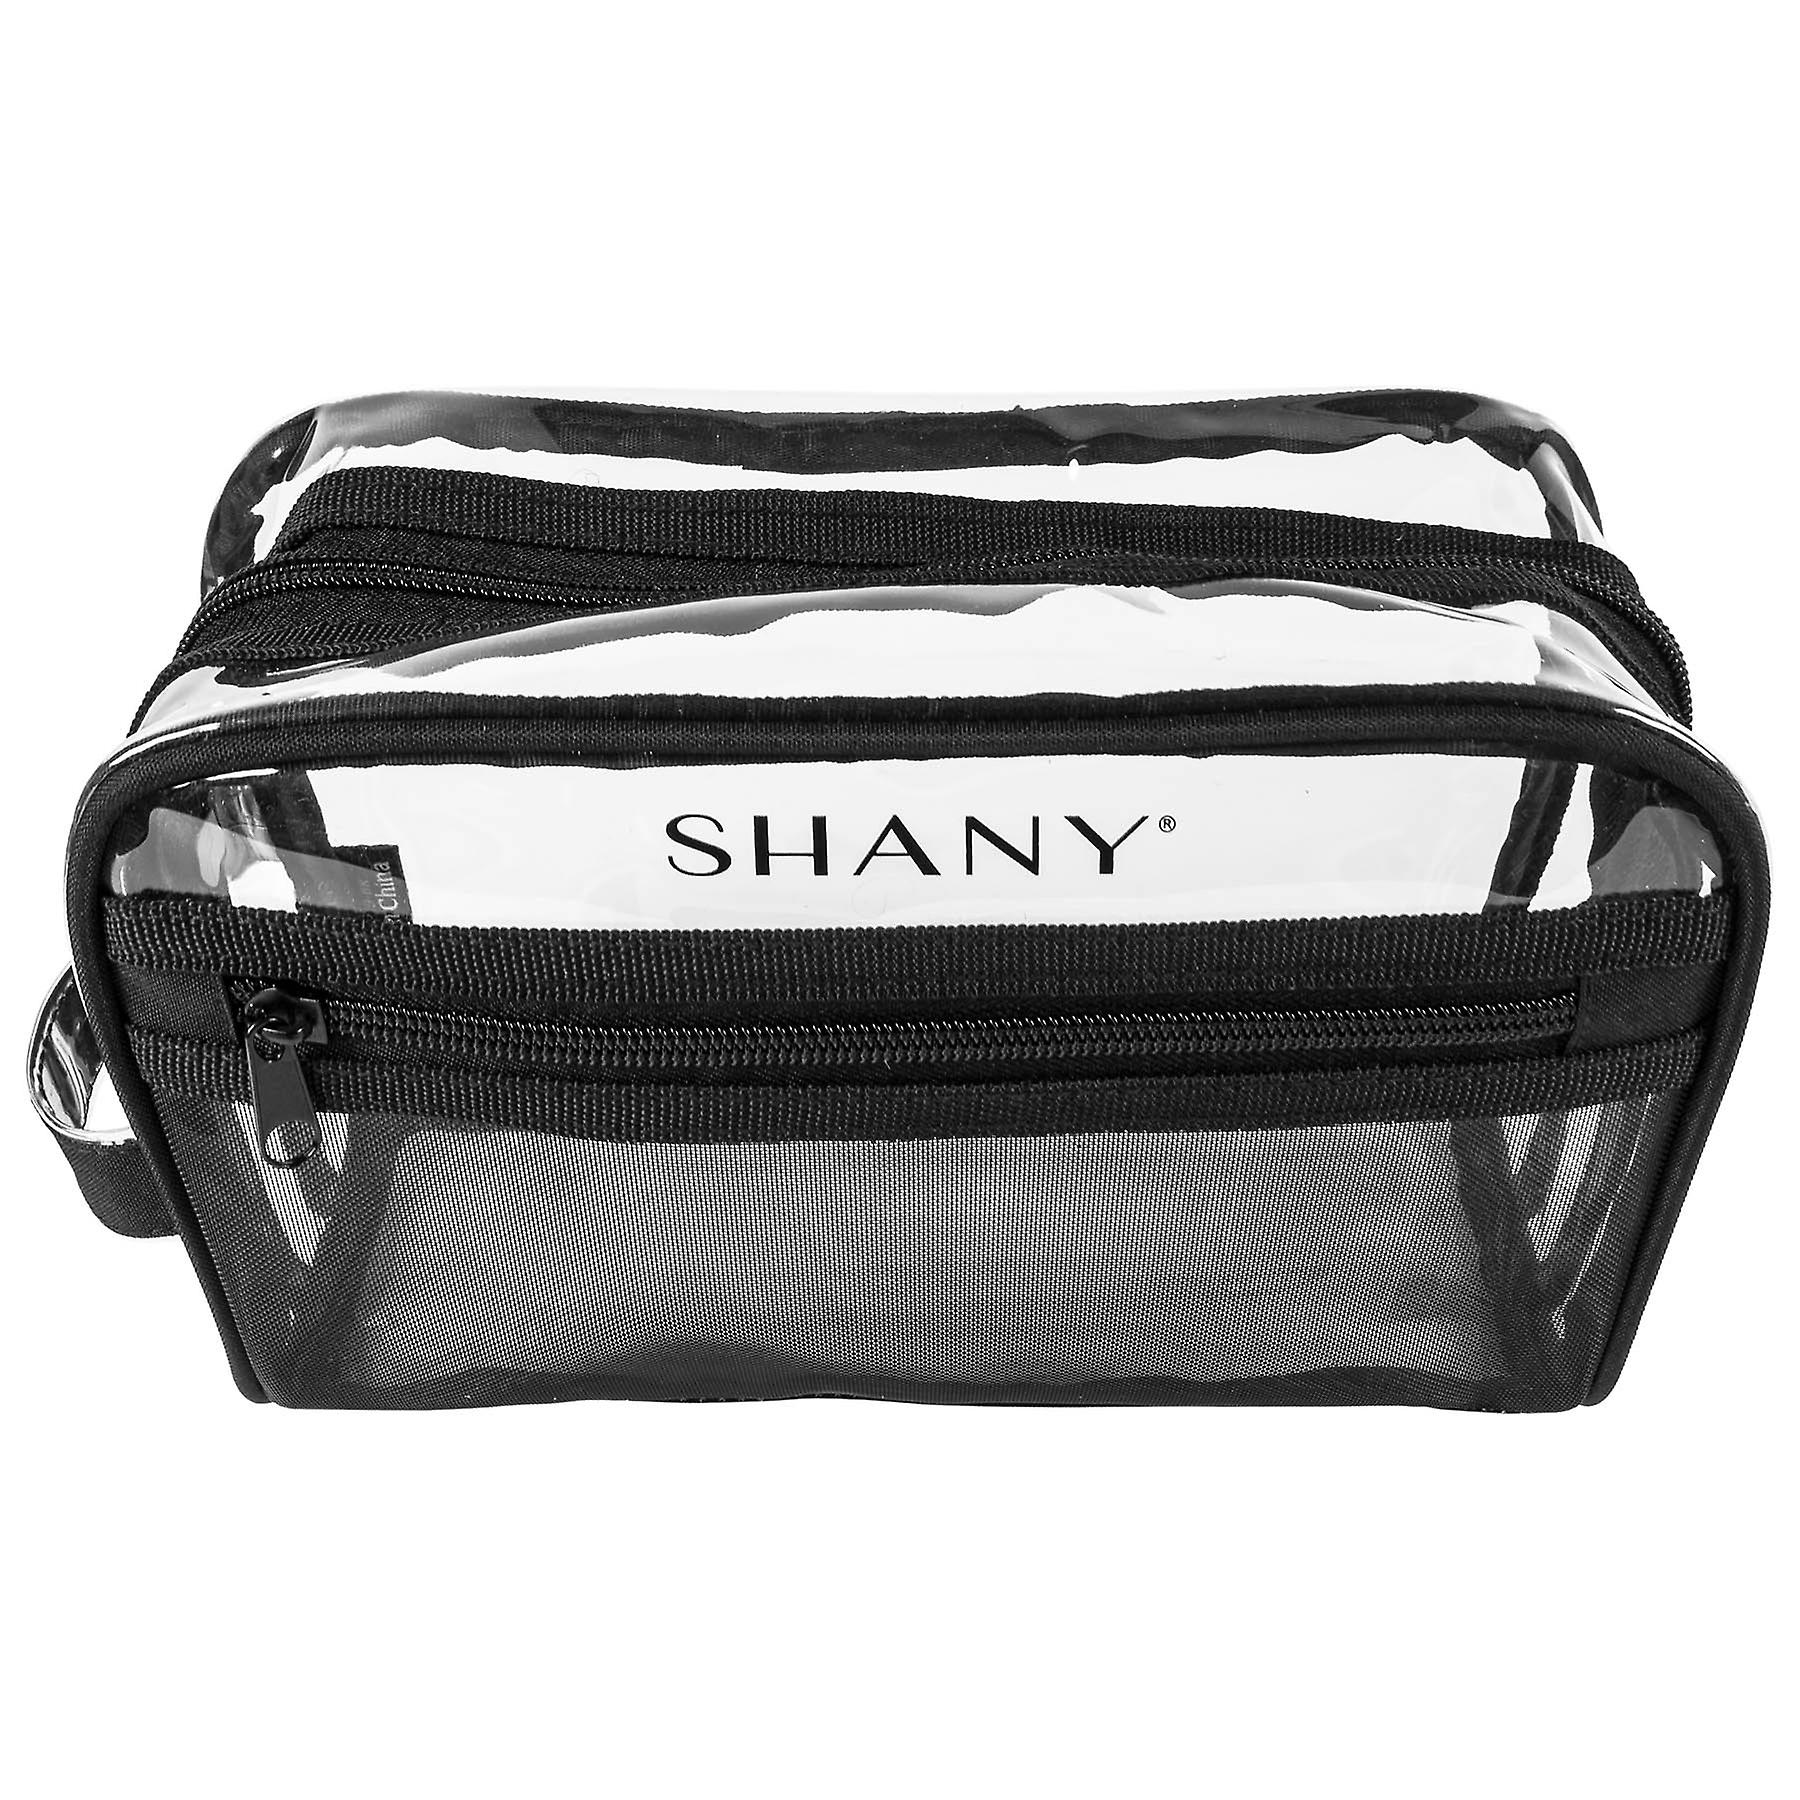 SHANY Clear Toiletry and Makeup Bag with Plastic Mesh Pocket - Medium Nontoxic Travel Organizer with Handle - Black Mesh